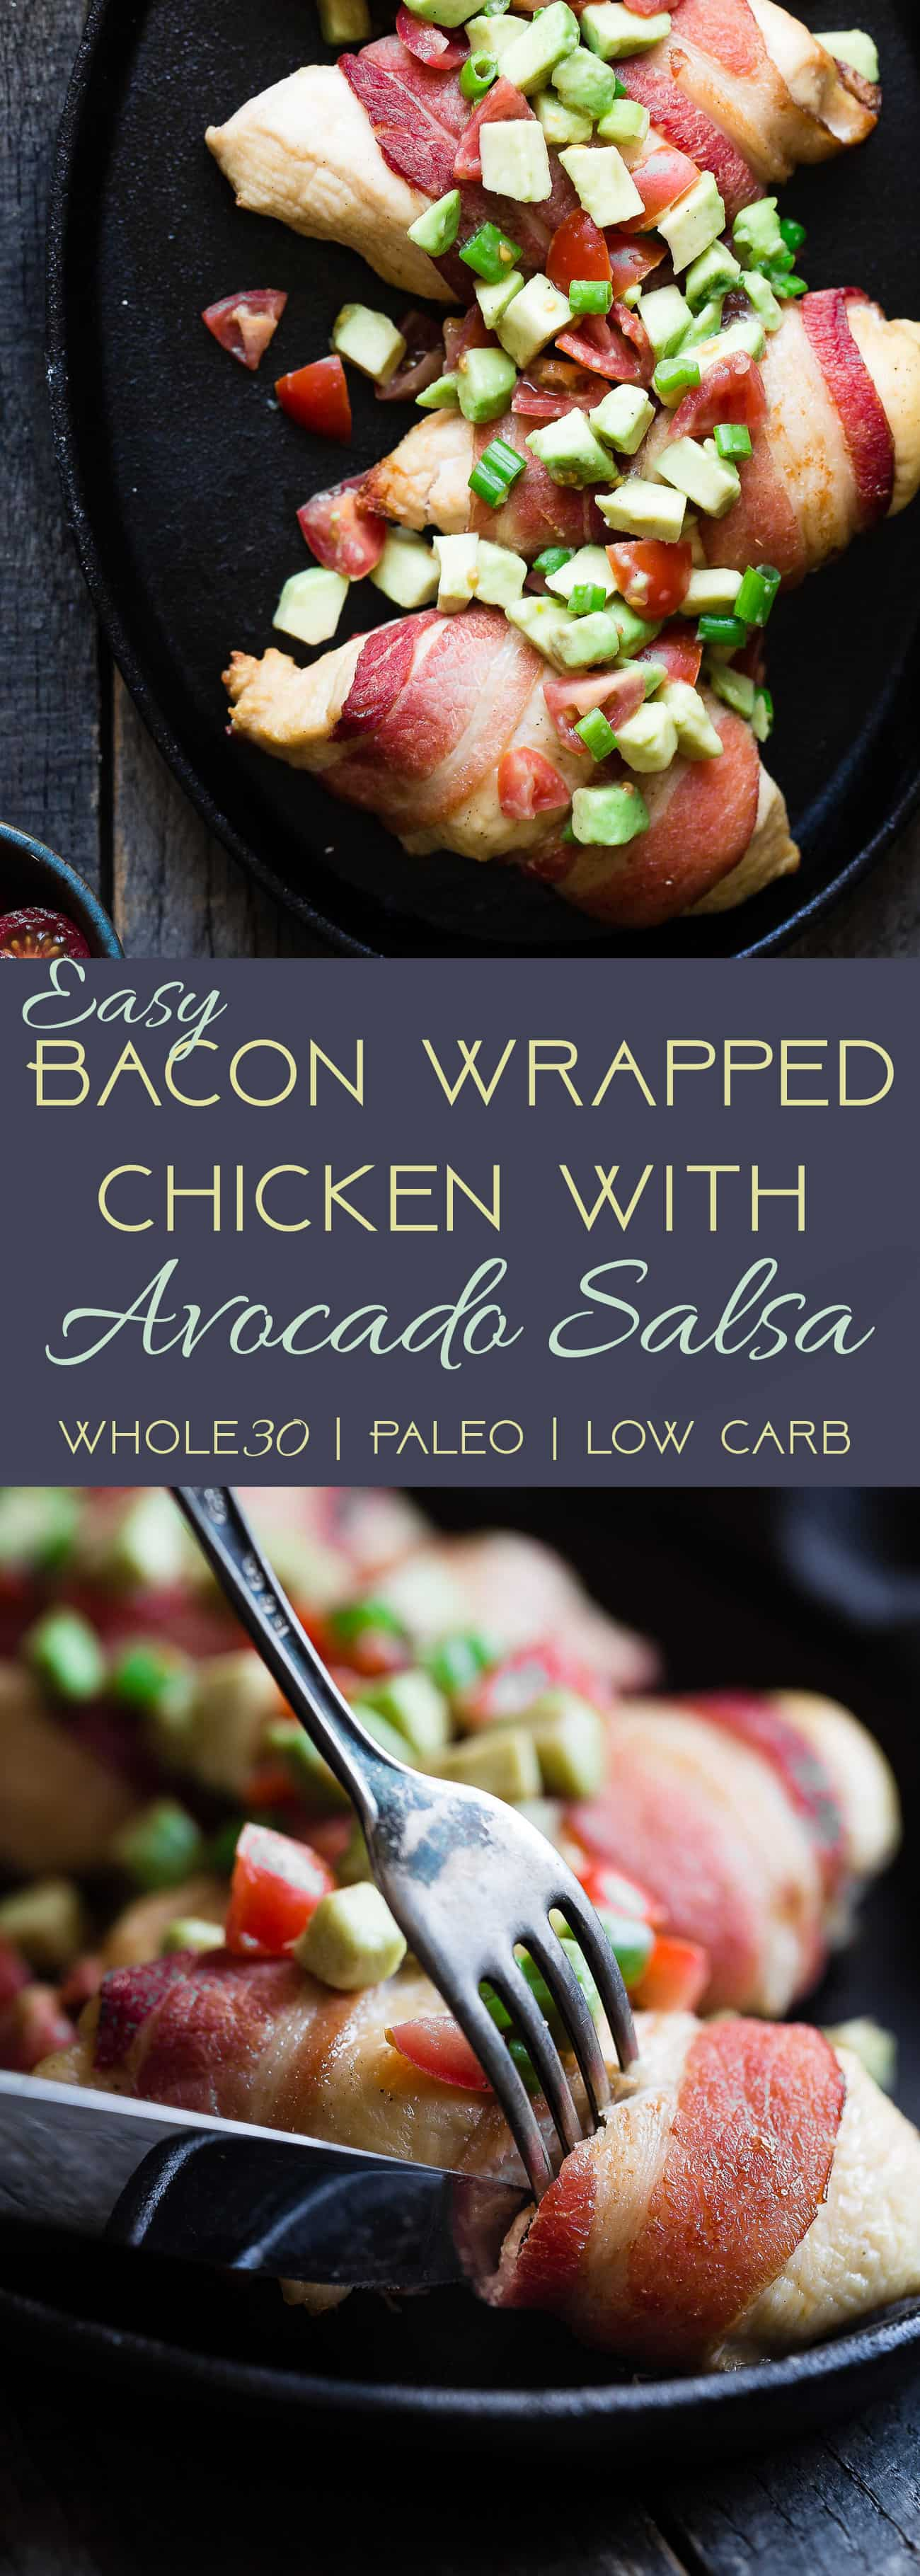 Whole30 Oven Baked Bacon Wrapped Chicken Breast - with a CREAMY, addicting avocado salsa, this is one quick and easy, kid friendly dinner that's paleo, keto and whole30 compliant! | Foodfaithfitness.com | @FoodFaithFit | keto bacon wrapped chicken. paleo bacon wrapped chicken. easy bacon wrapped chicken. low carb bacon wrapped chicken. whole30 chicken recipes. paleo chicken recipes.